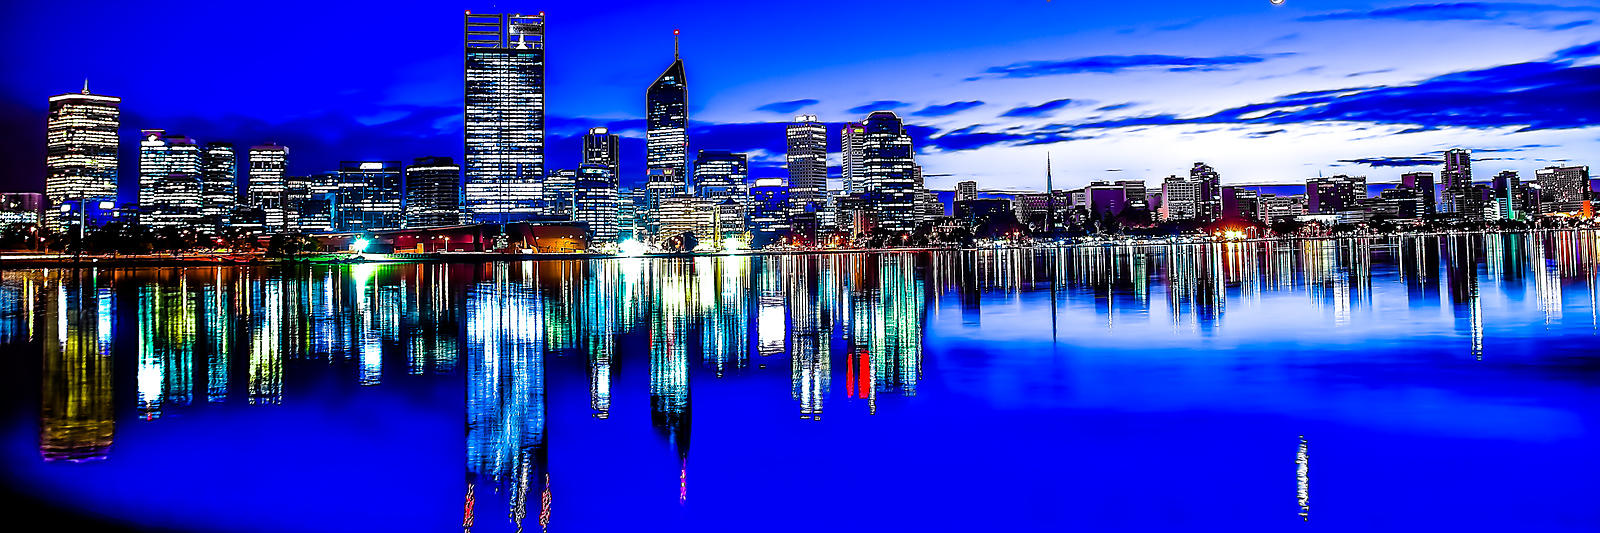 Perth cbd at night reflecting in the swan river